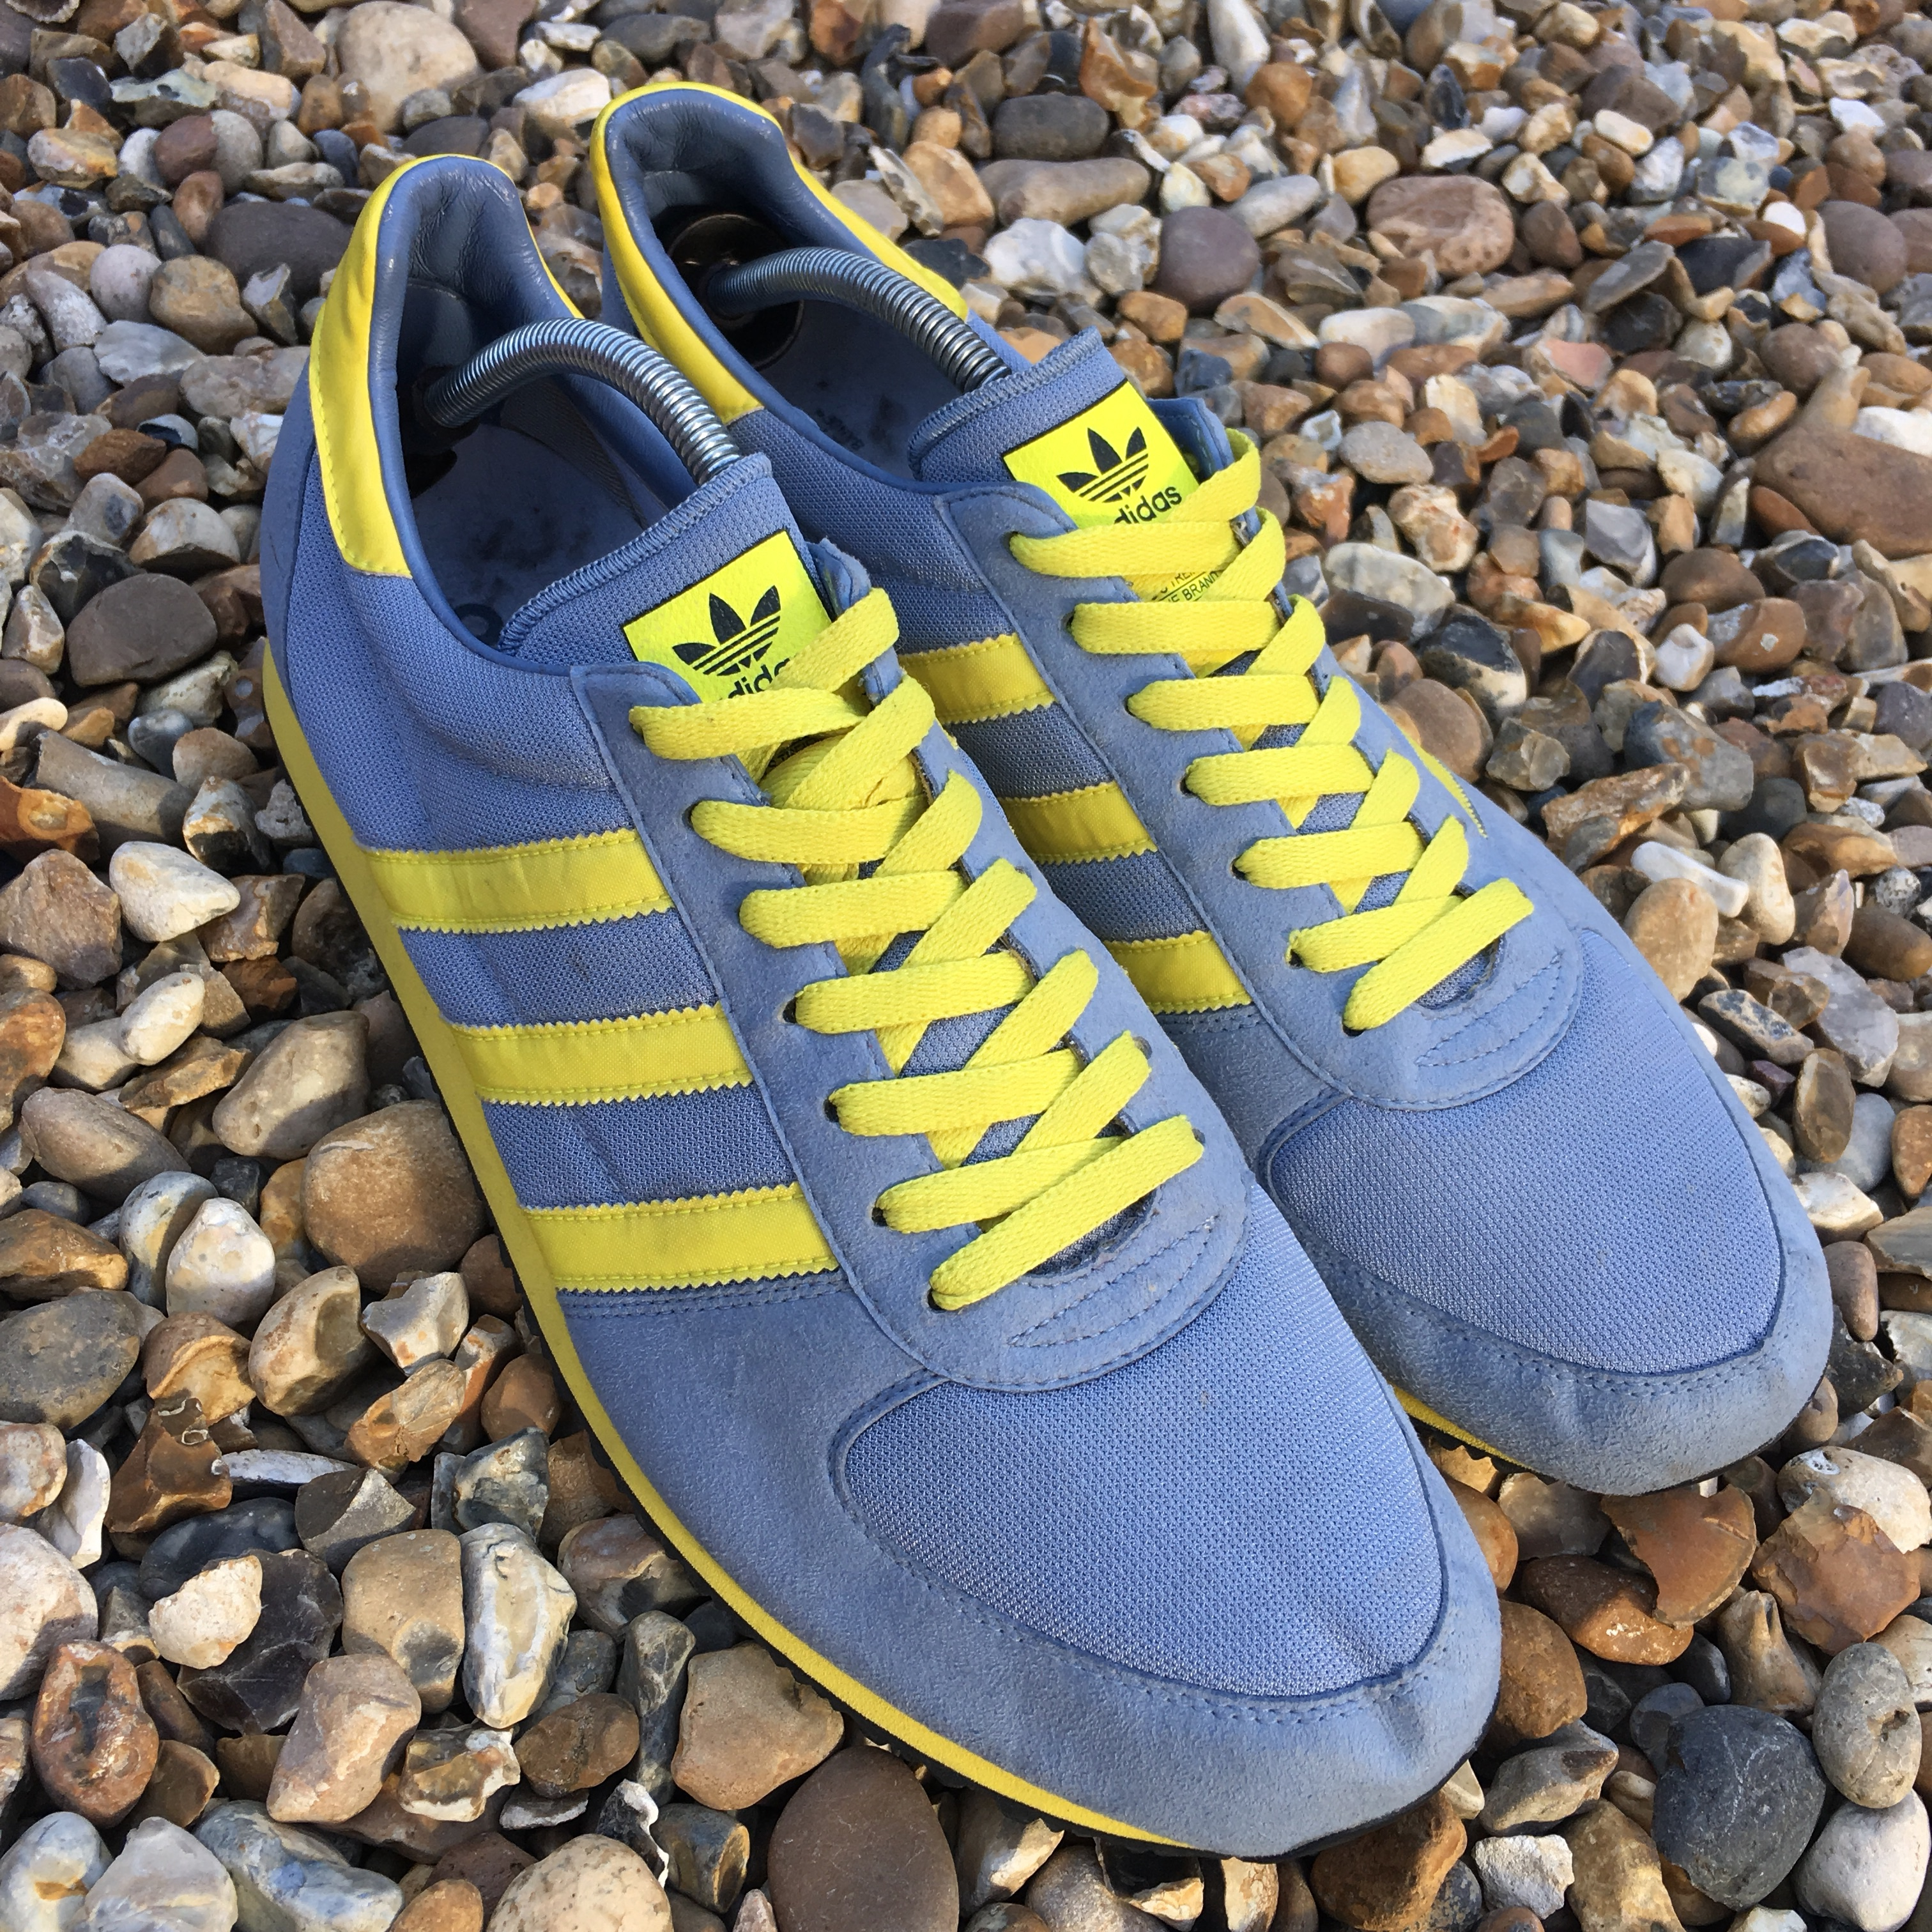 Men's Adidas Trainer Blue/Yellow Size 12. Trainers...